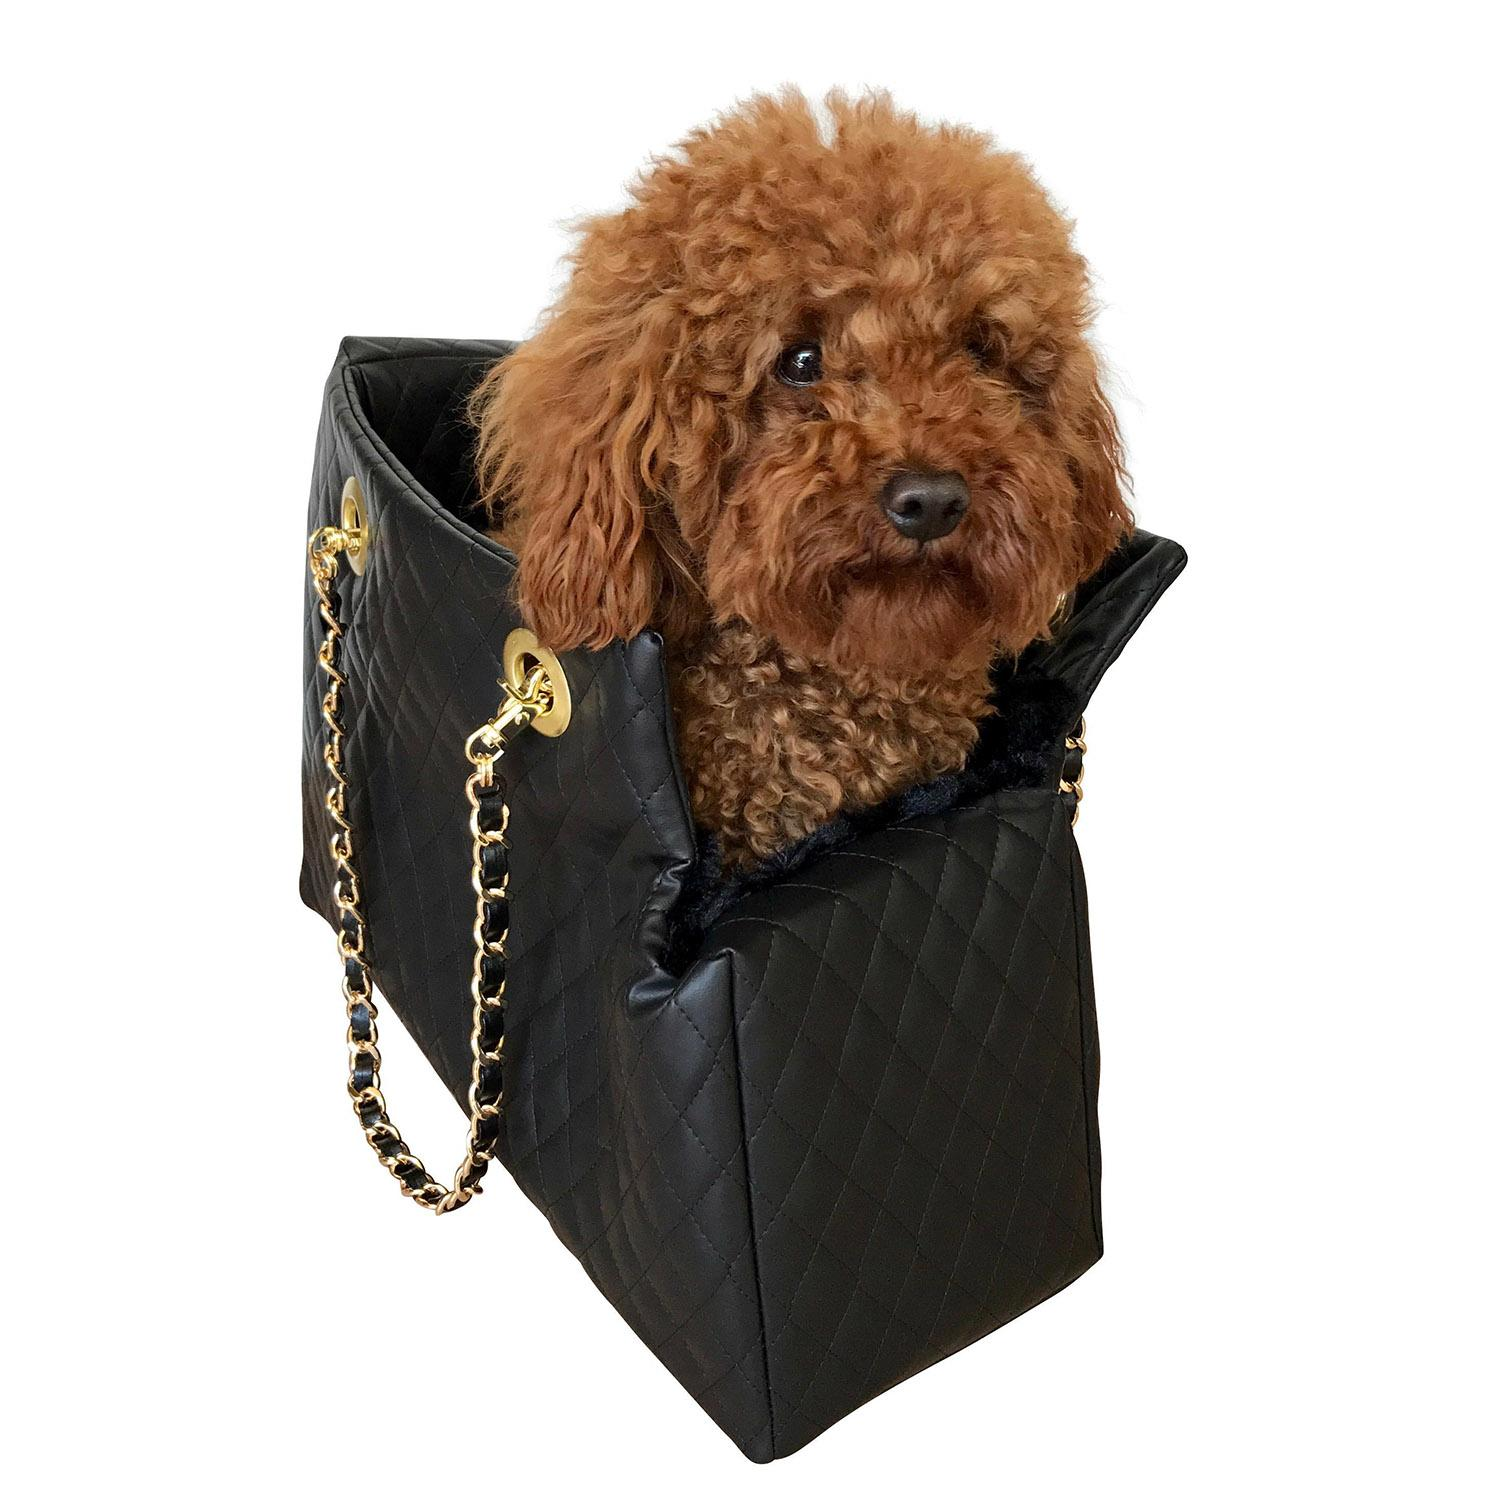 Kate Quilted Dog Carrier by The Dog Squad - Black